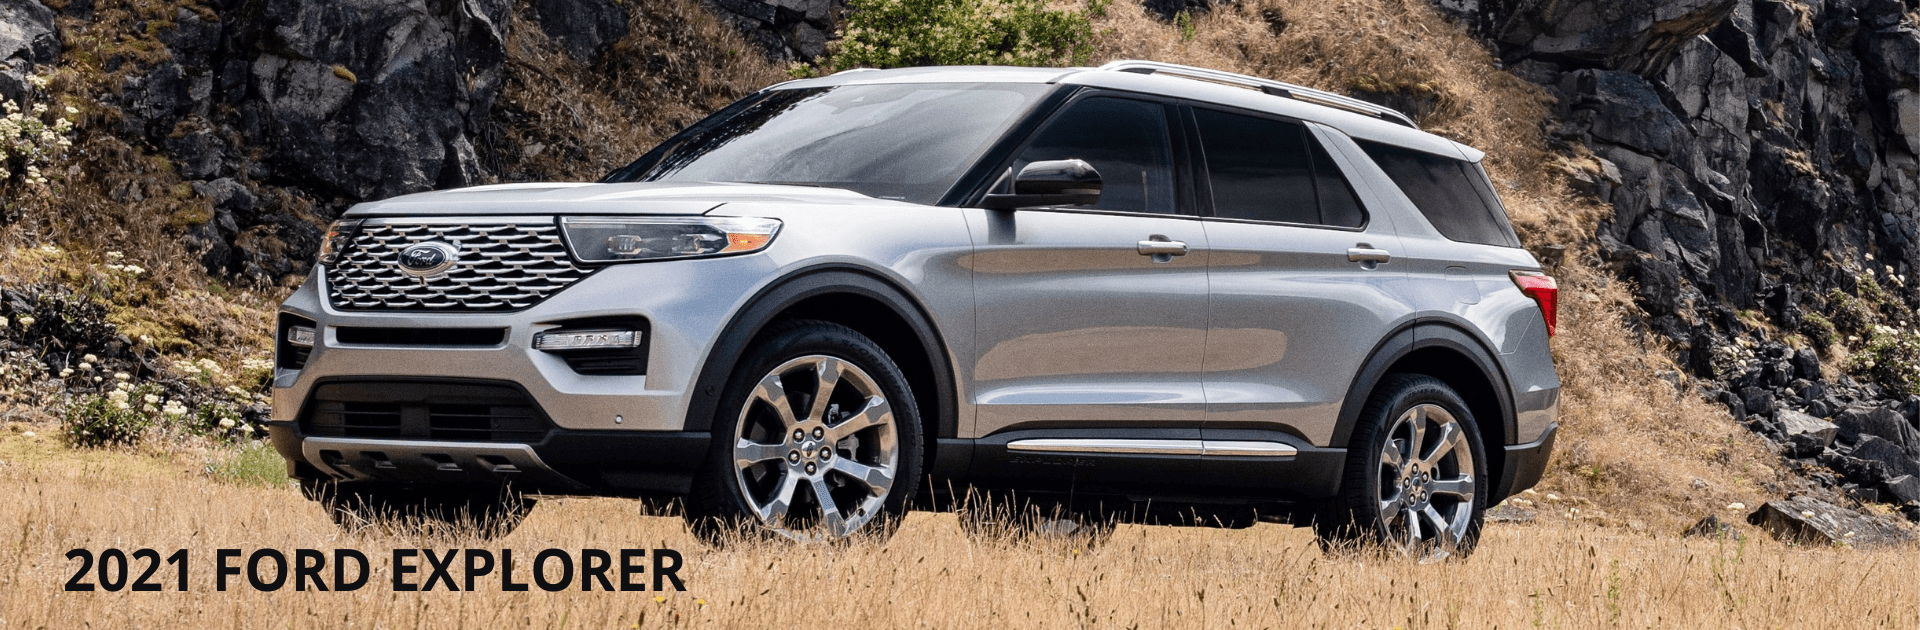 2021 Ford Explorer In The Mountains Min 1